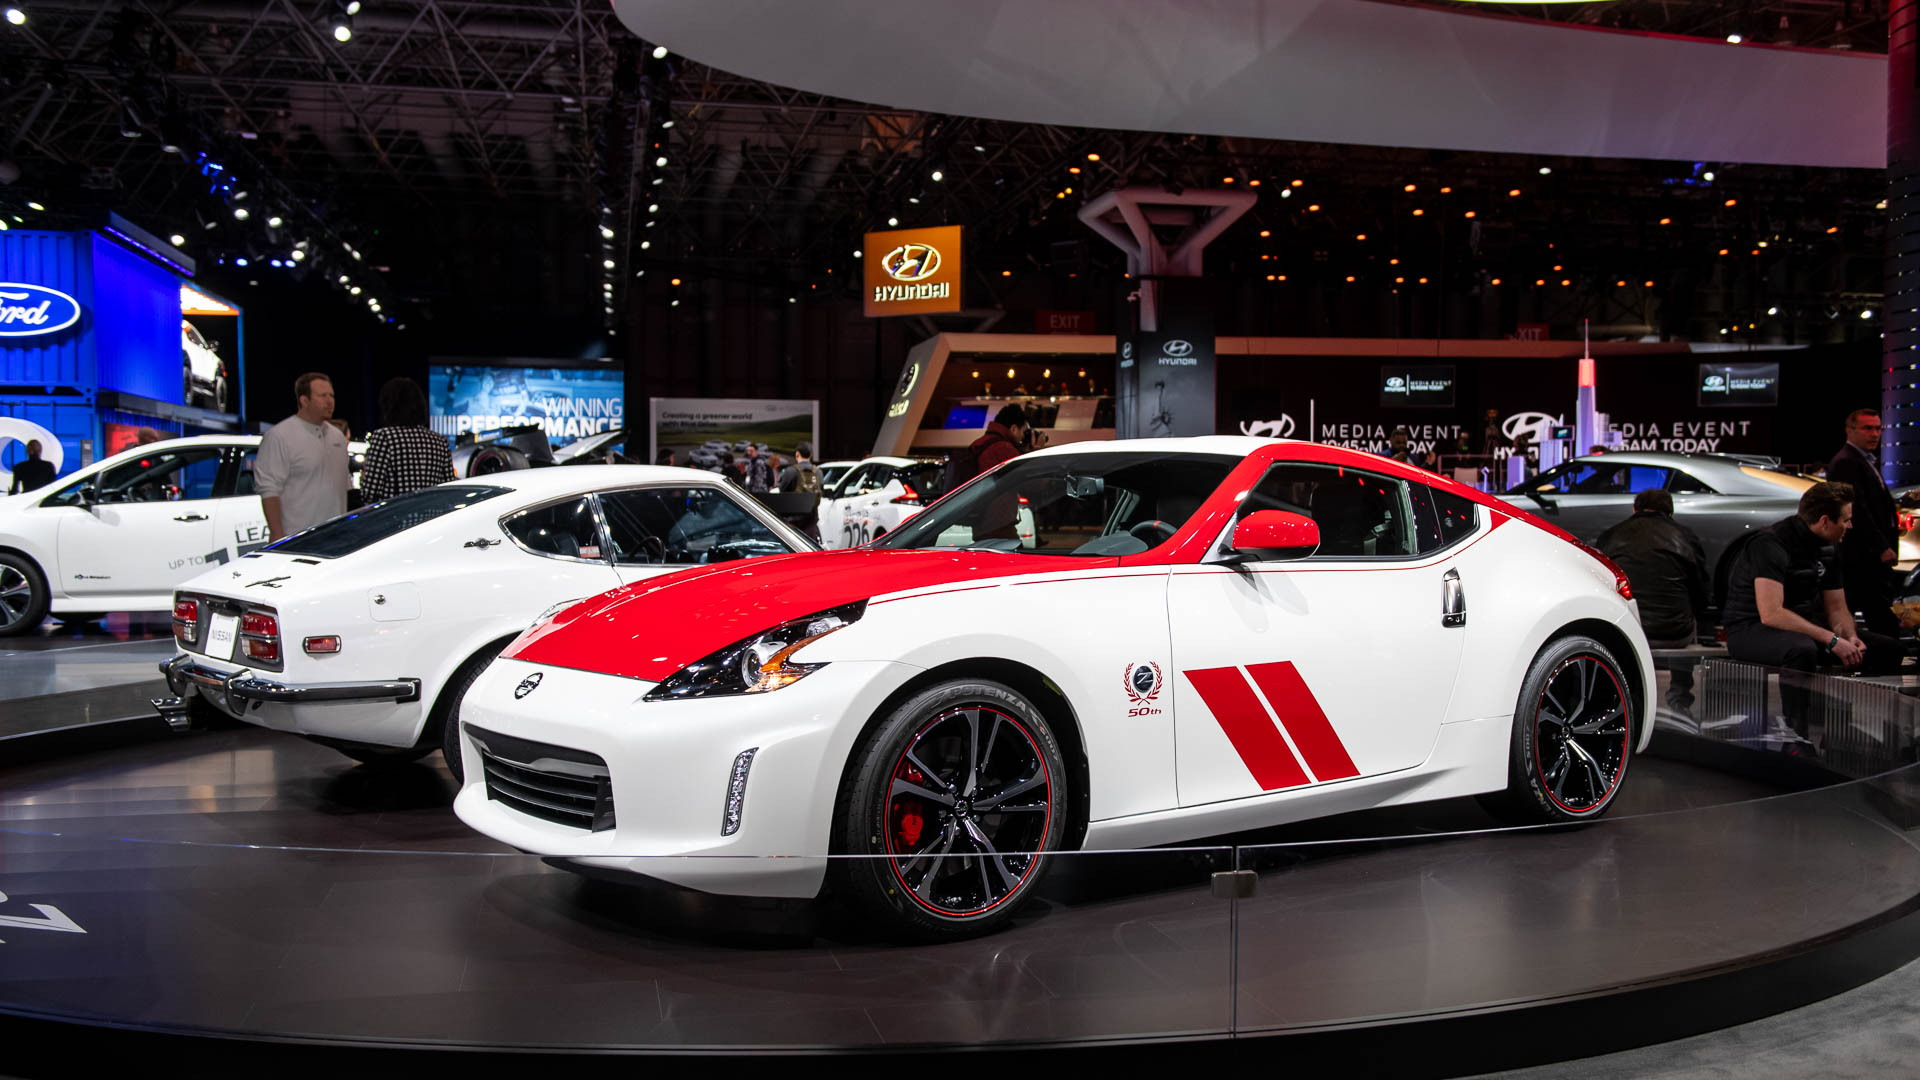 2020 Nissan 370Z 50th Anniversary Edition, 2019 New York International Auto Show